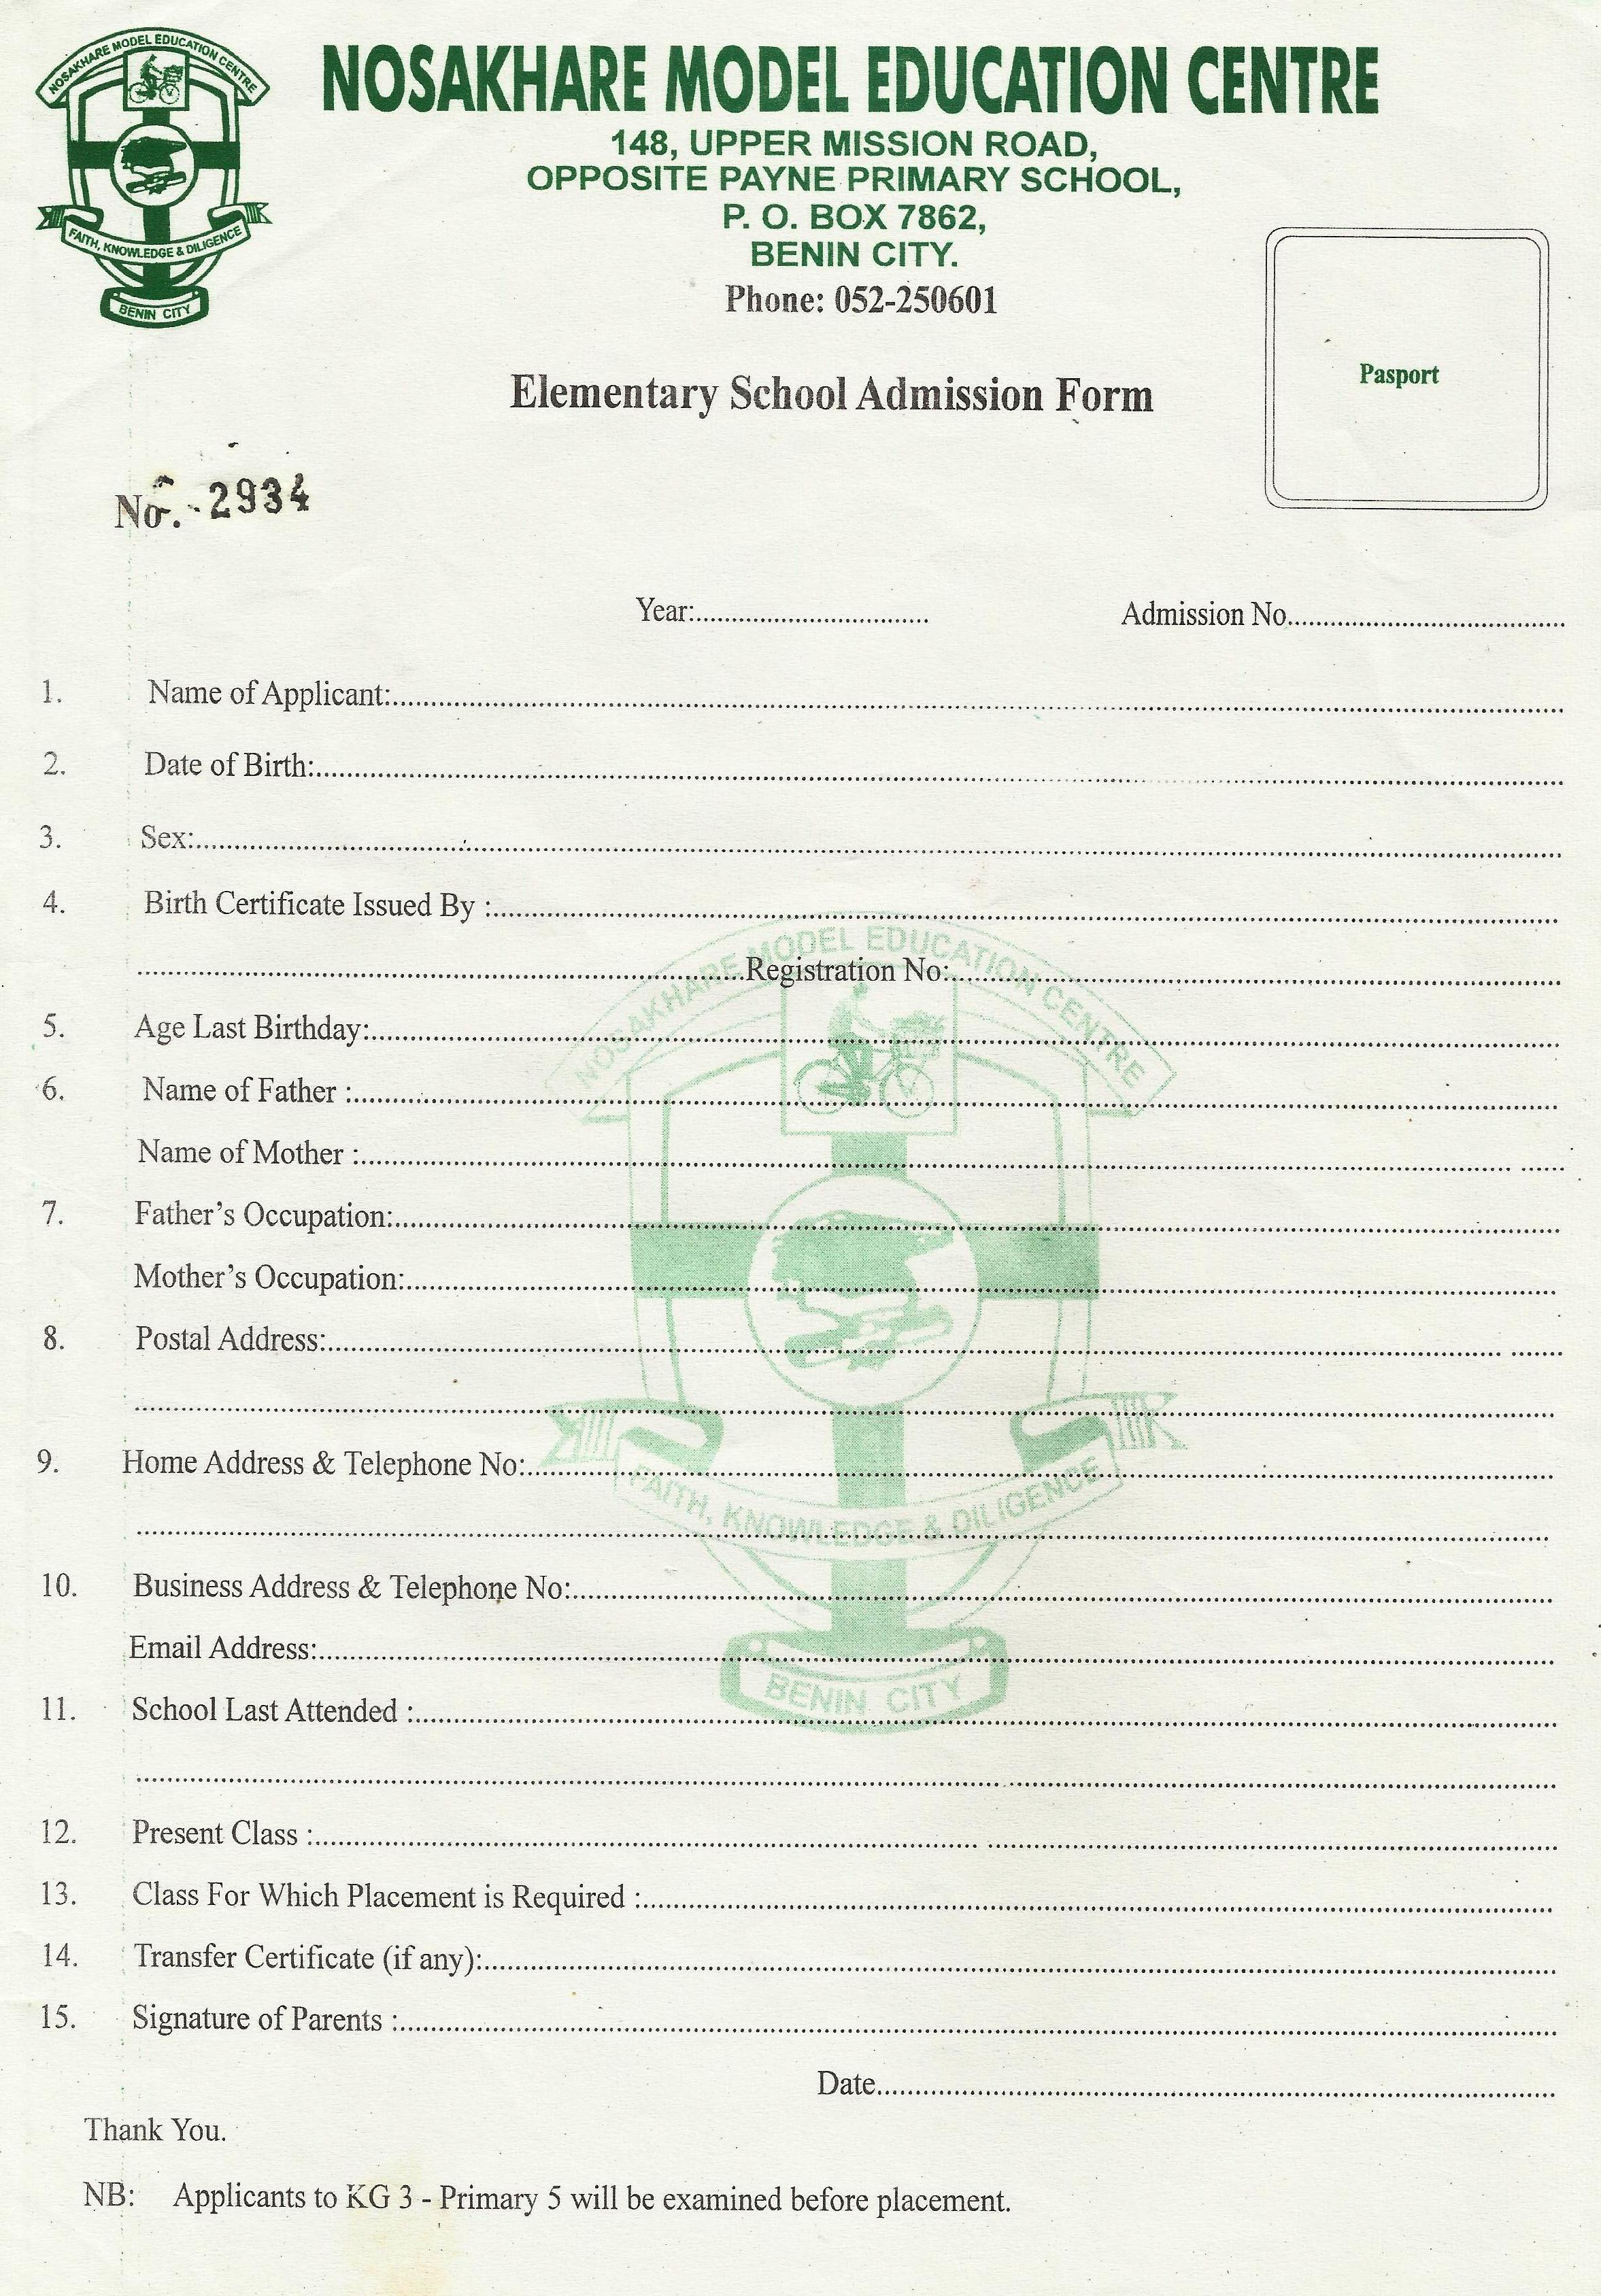 Elementary School Admission Form NOSAKHARE MODEL EDUCATION CENTRE – Form for School Admission